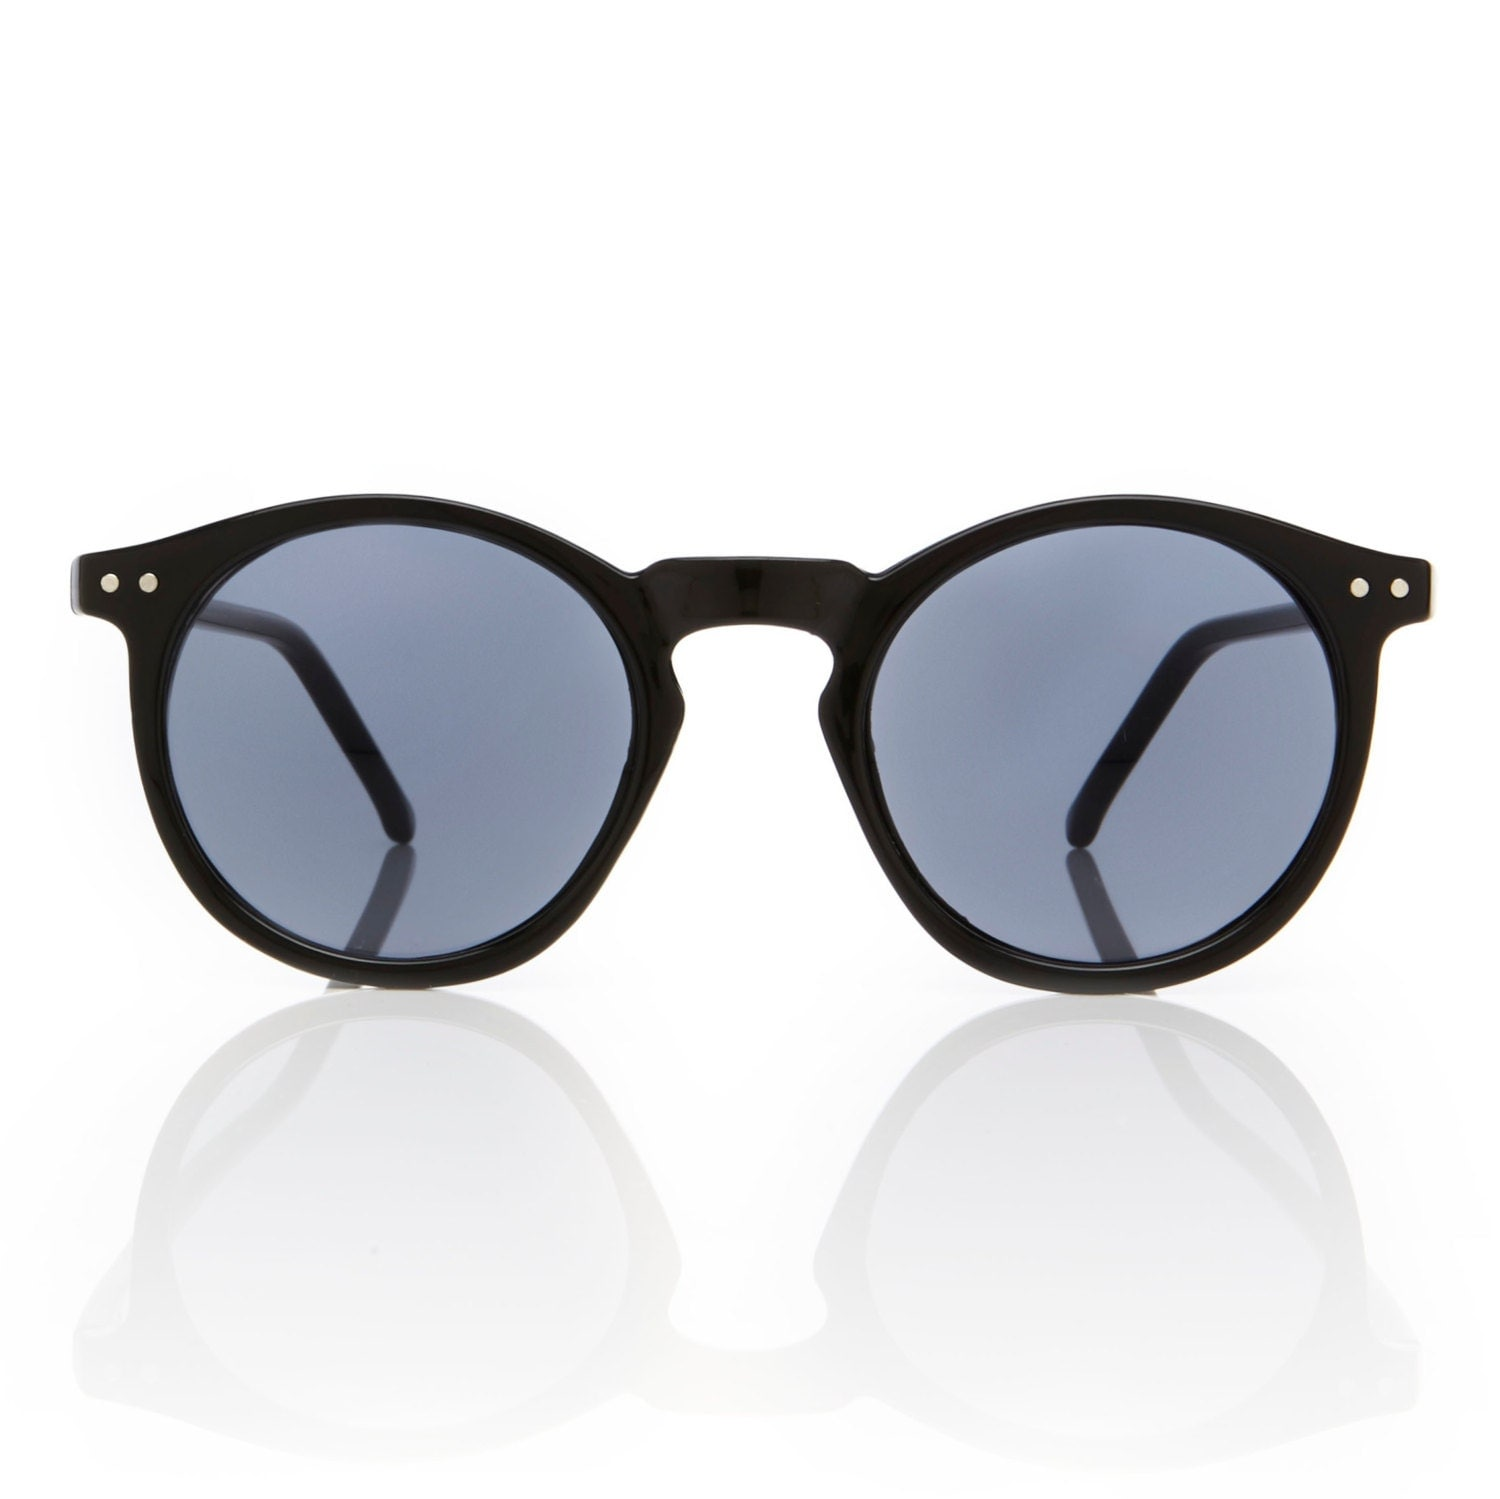 Black Frame Accessory Glasses : O Malley Sunglasses Retro Round Black Frame Glasses ...